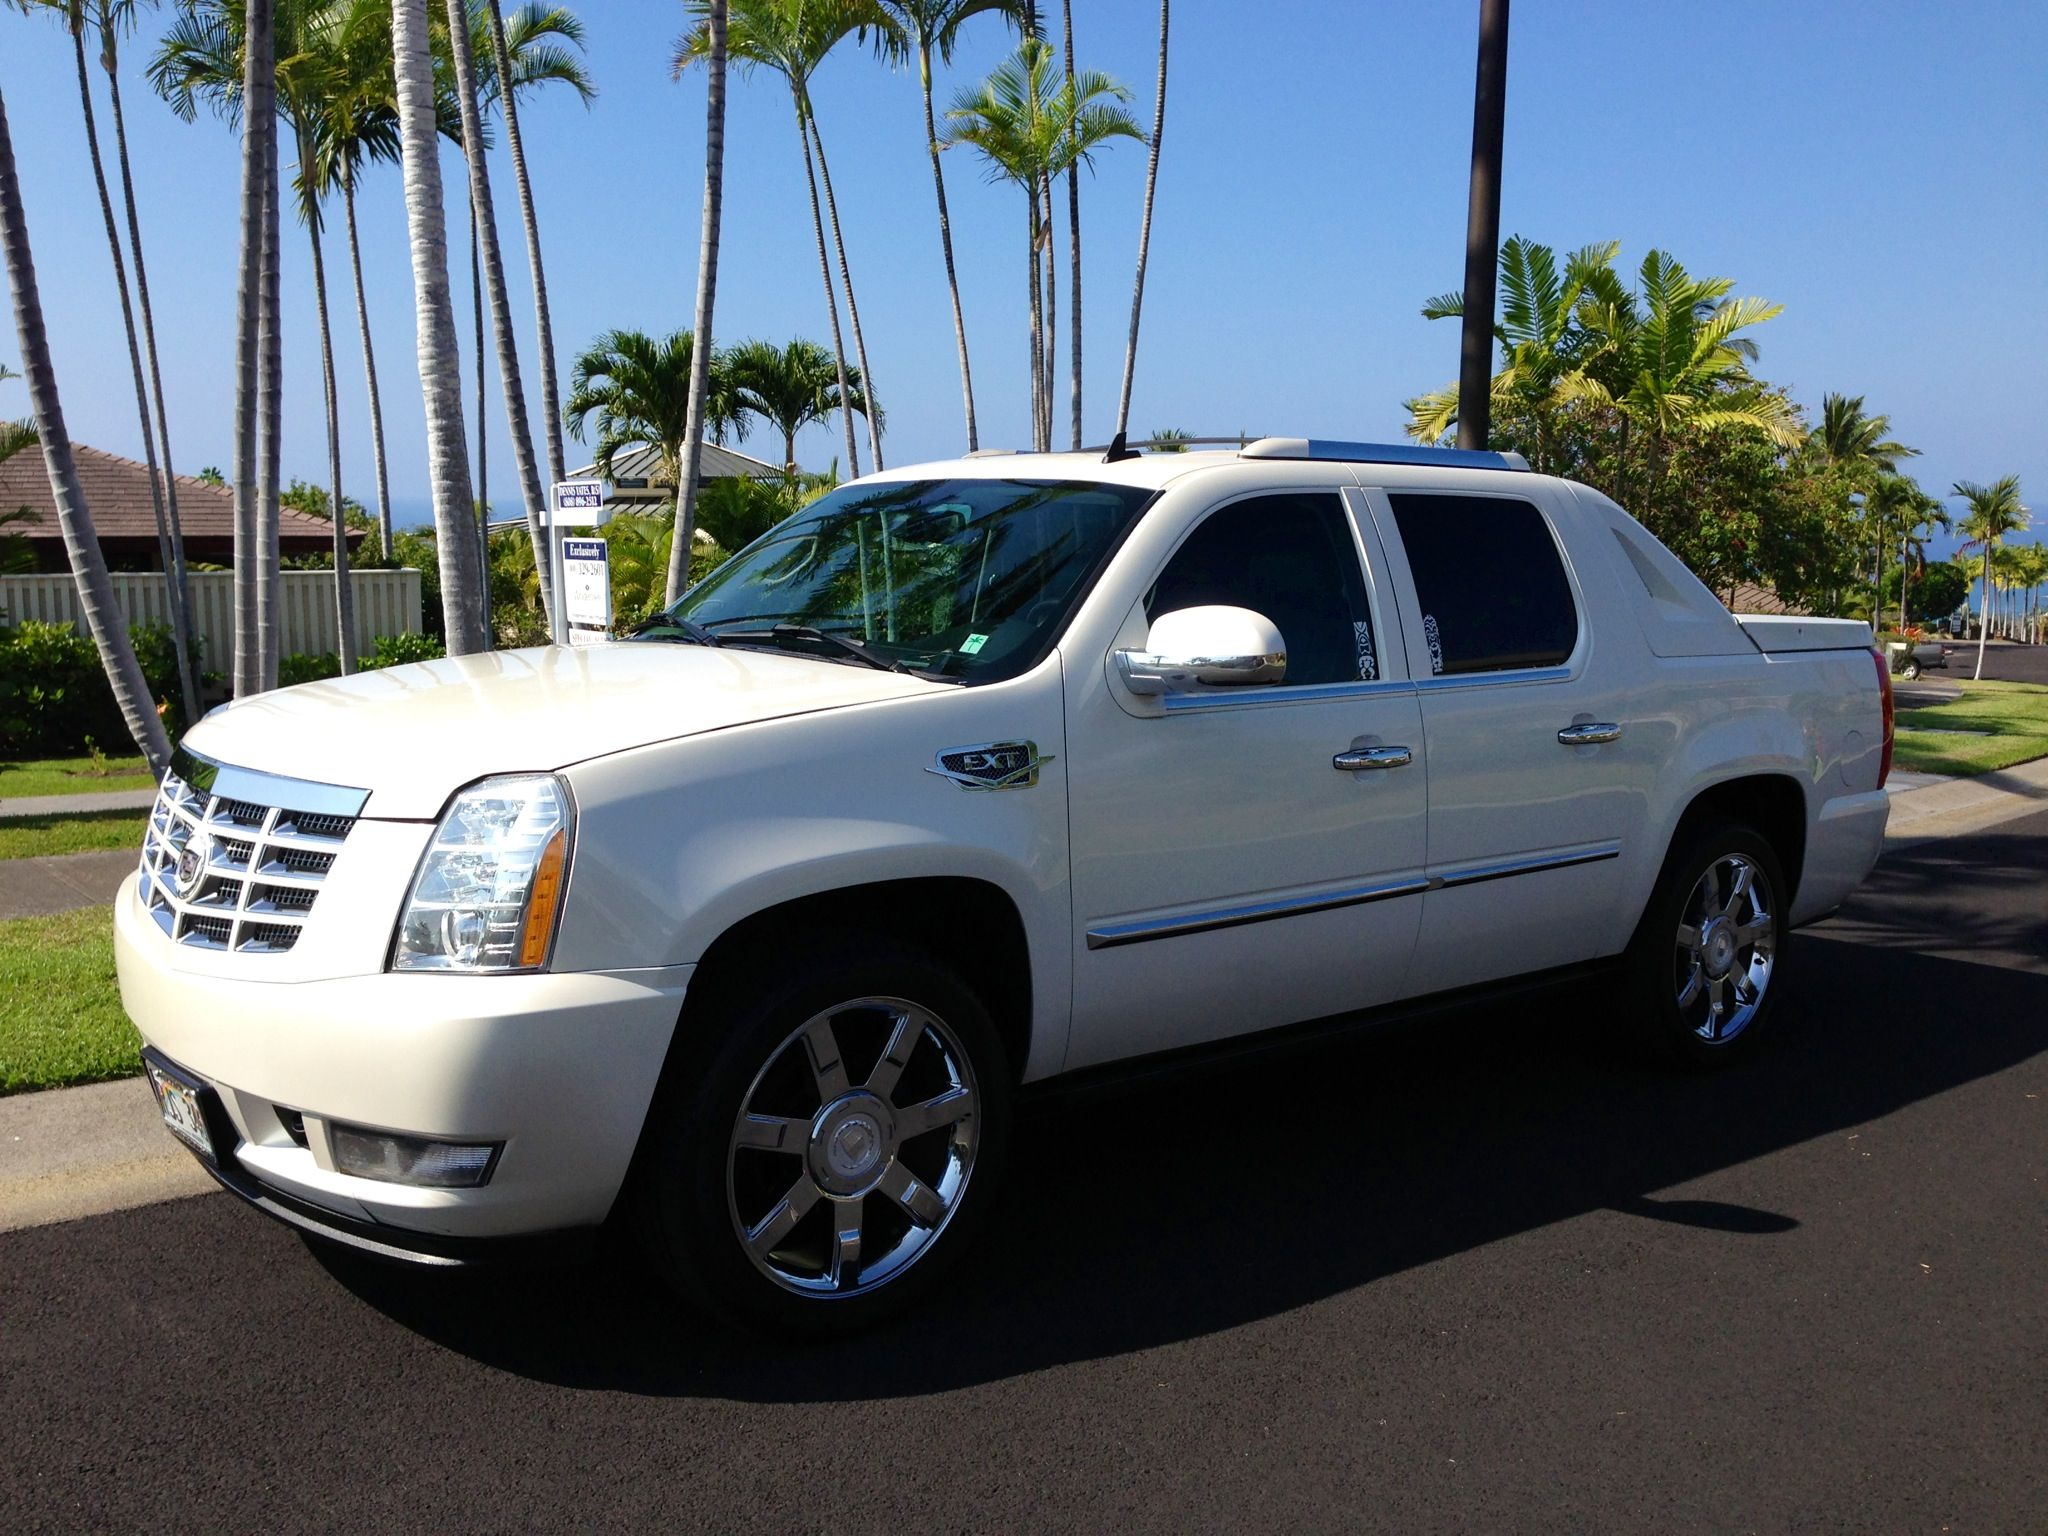 2008 cadillac escalade ext cars pushing the limits pinterest escalade ext cadillac. Black Bedroom Furniture Sets. Home Design Ideas